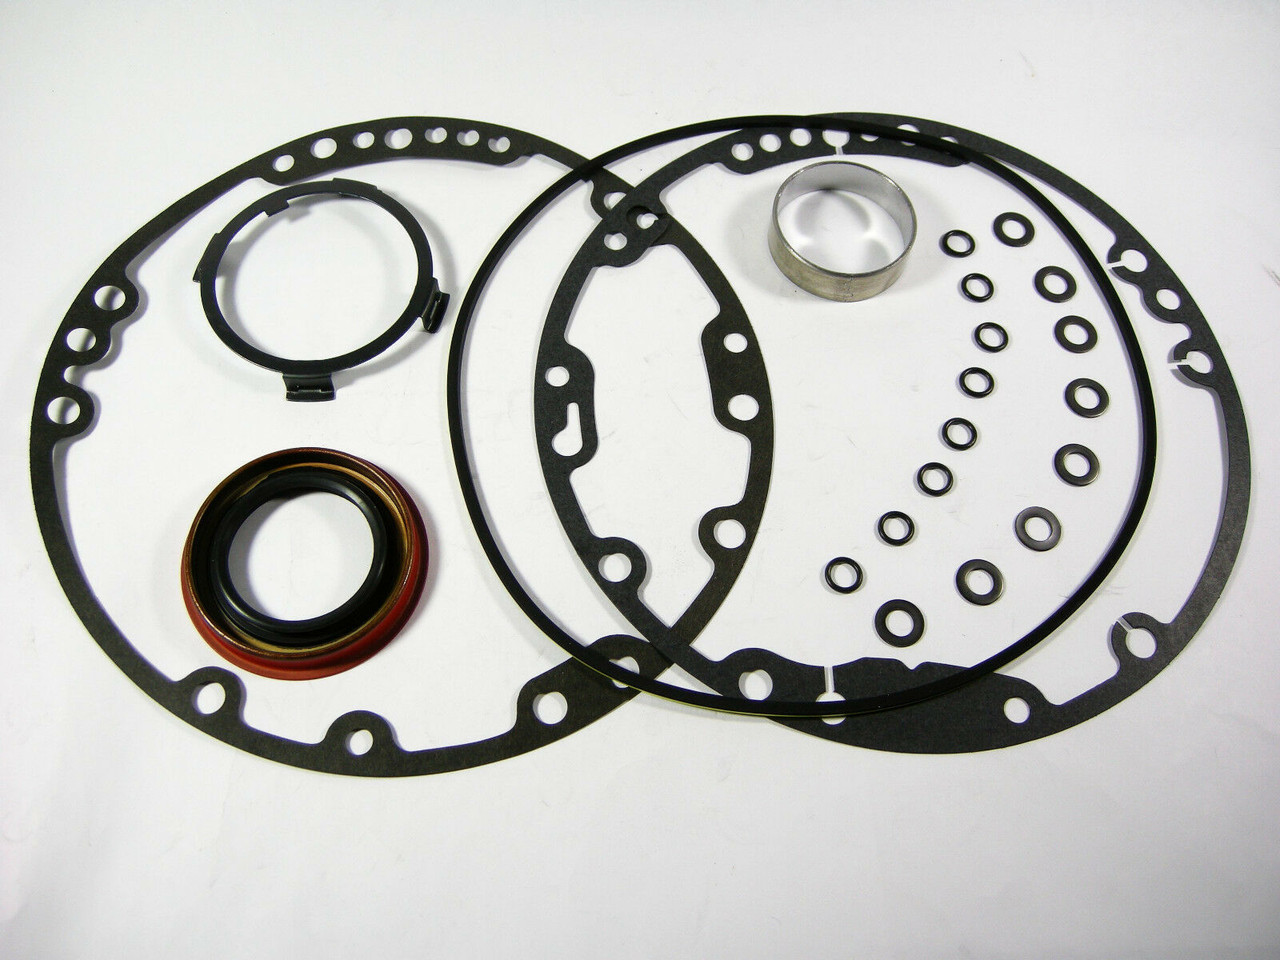 700R4 4L60 Front Pump Leak Sealing Gasket & Seal Kit 1982-1992